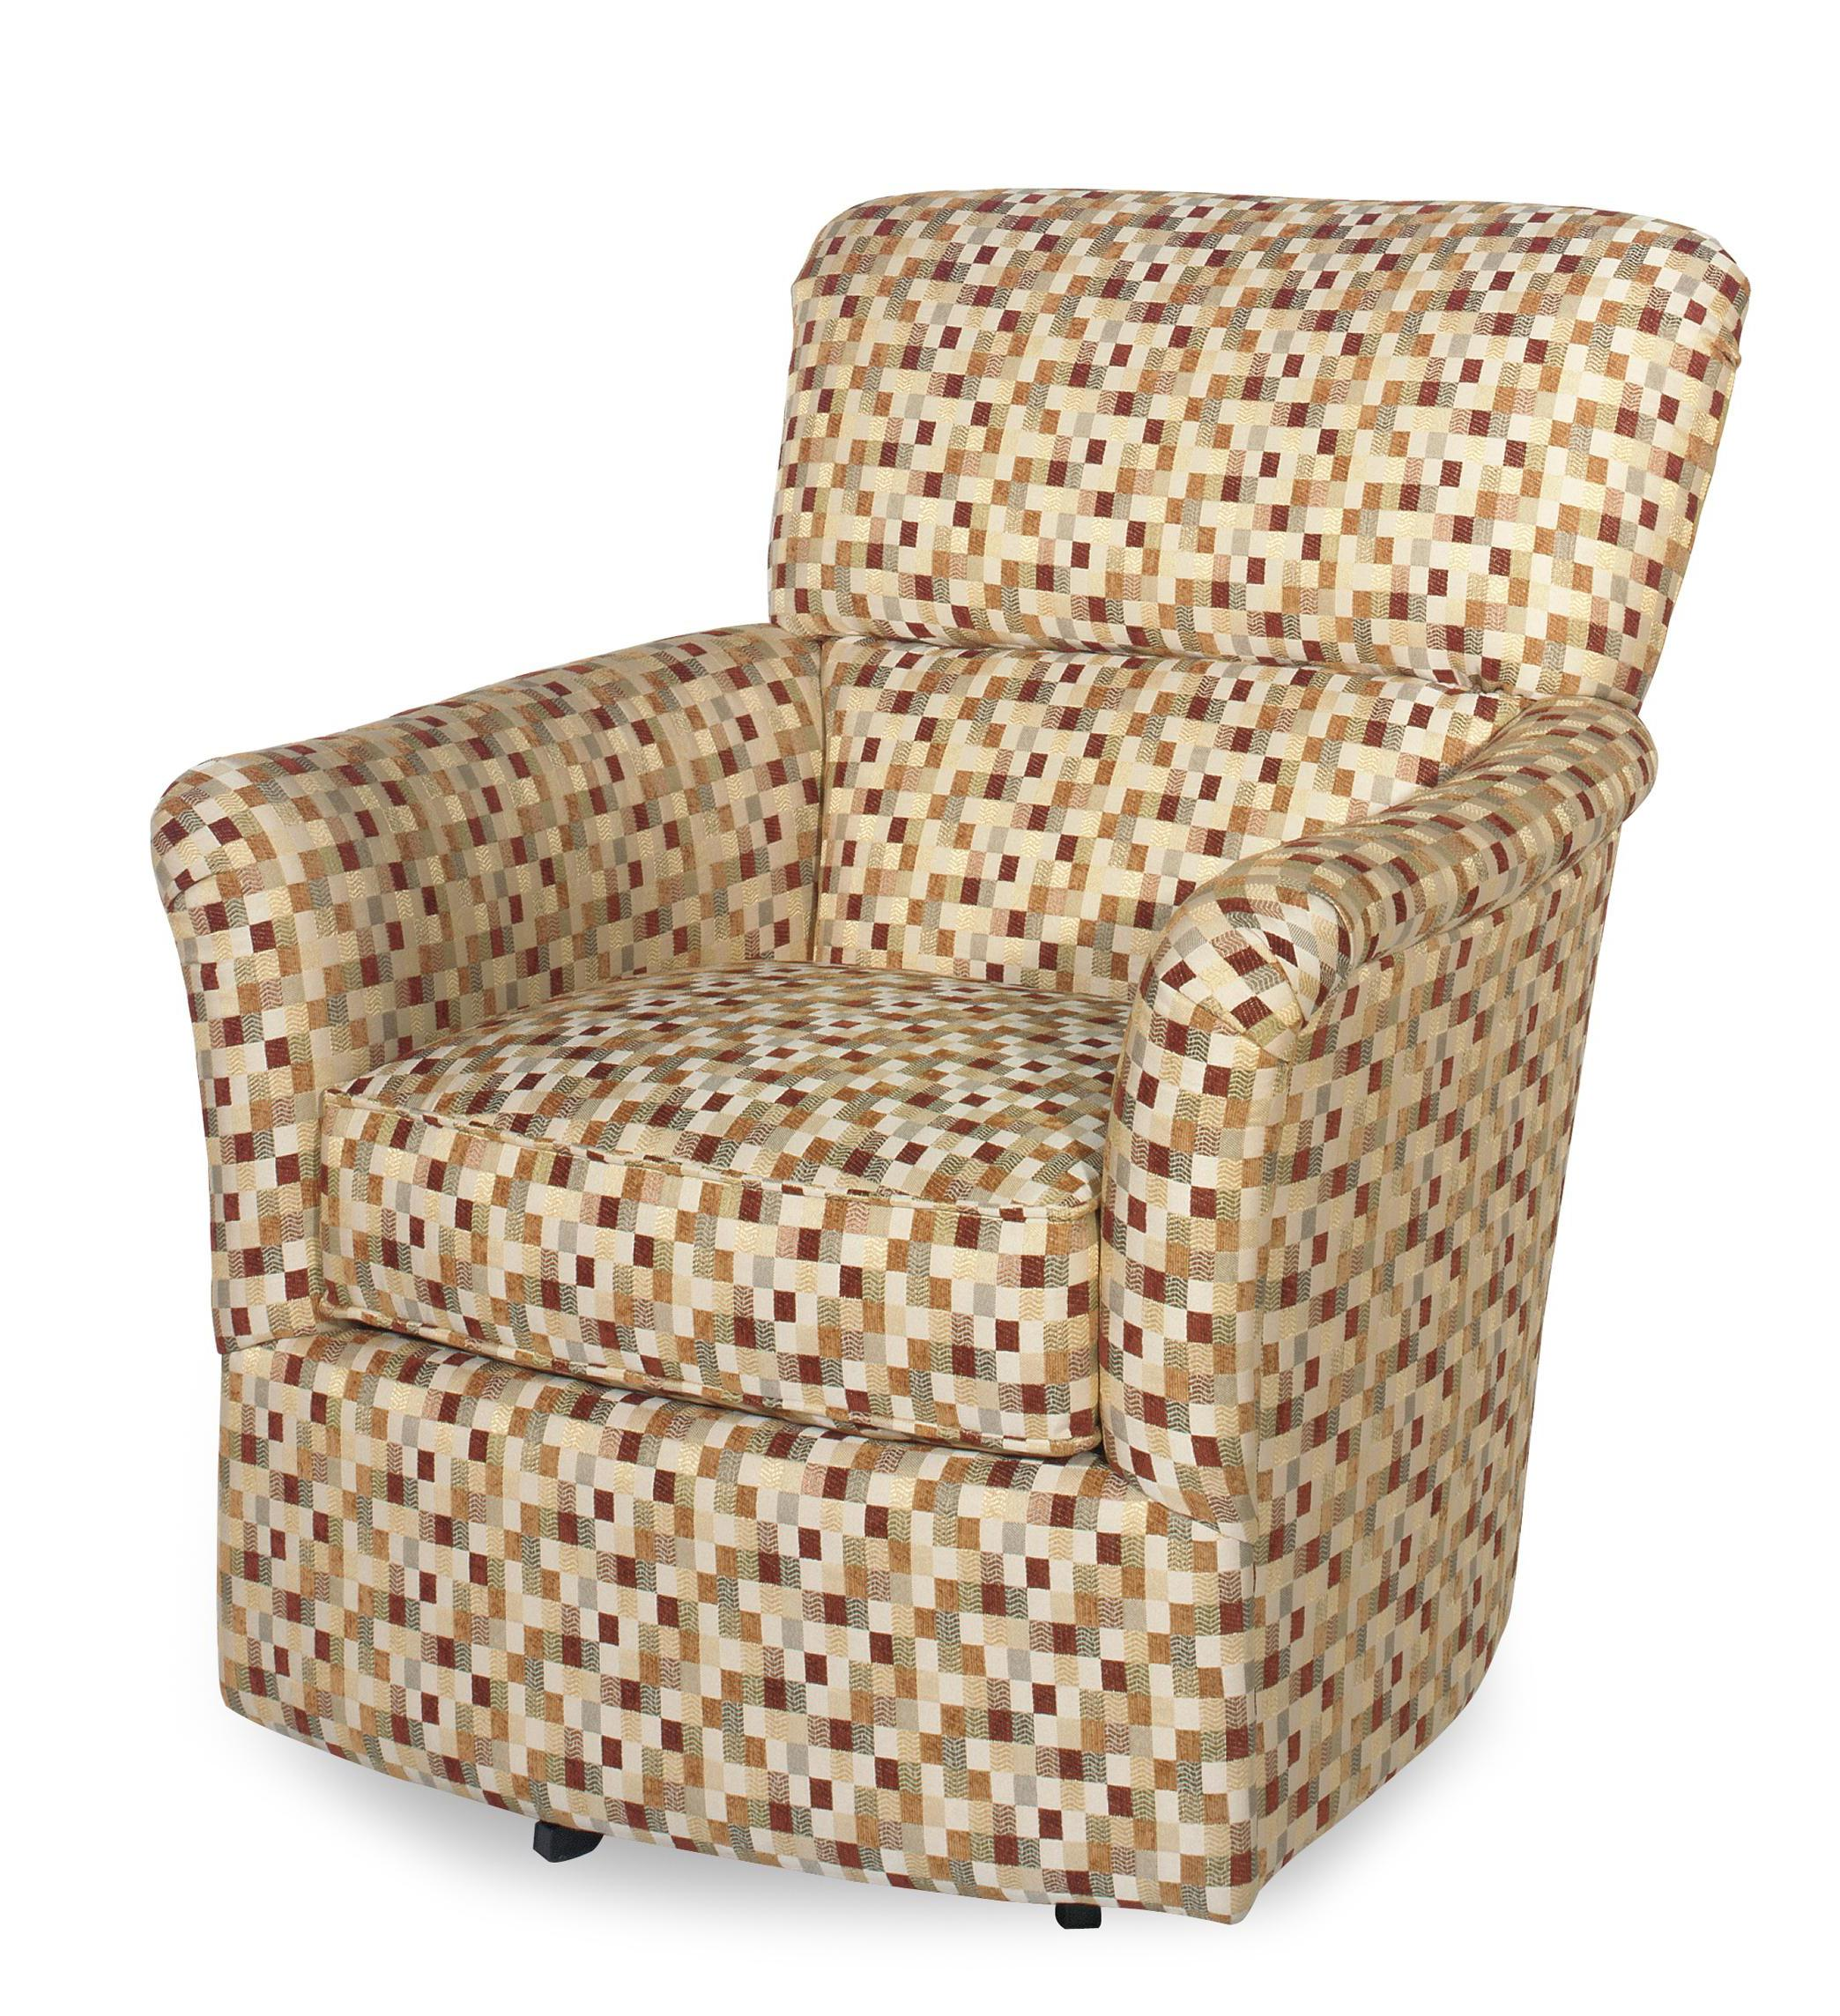 Craftmaster Swivel Chairs Contemporary Upholstered Swivel Chair With Flair  Arms   AHFA   Upholstered Chair Dealer Locator